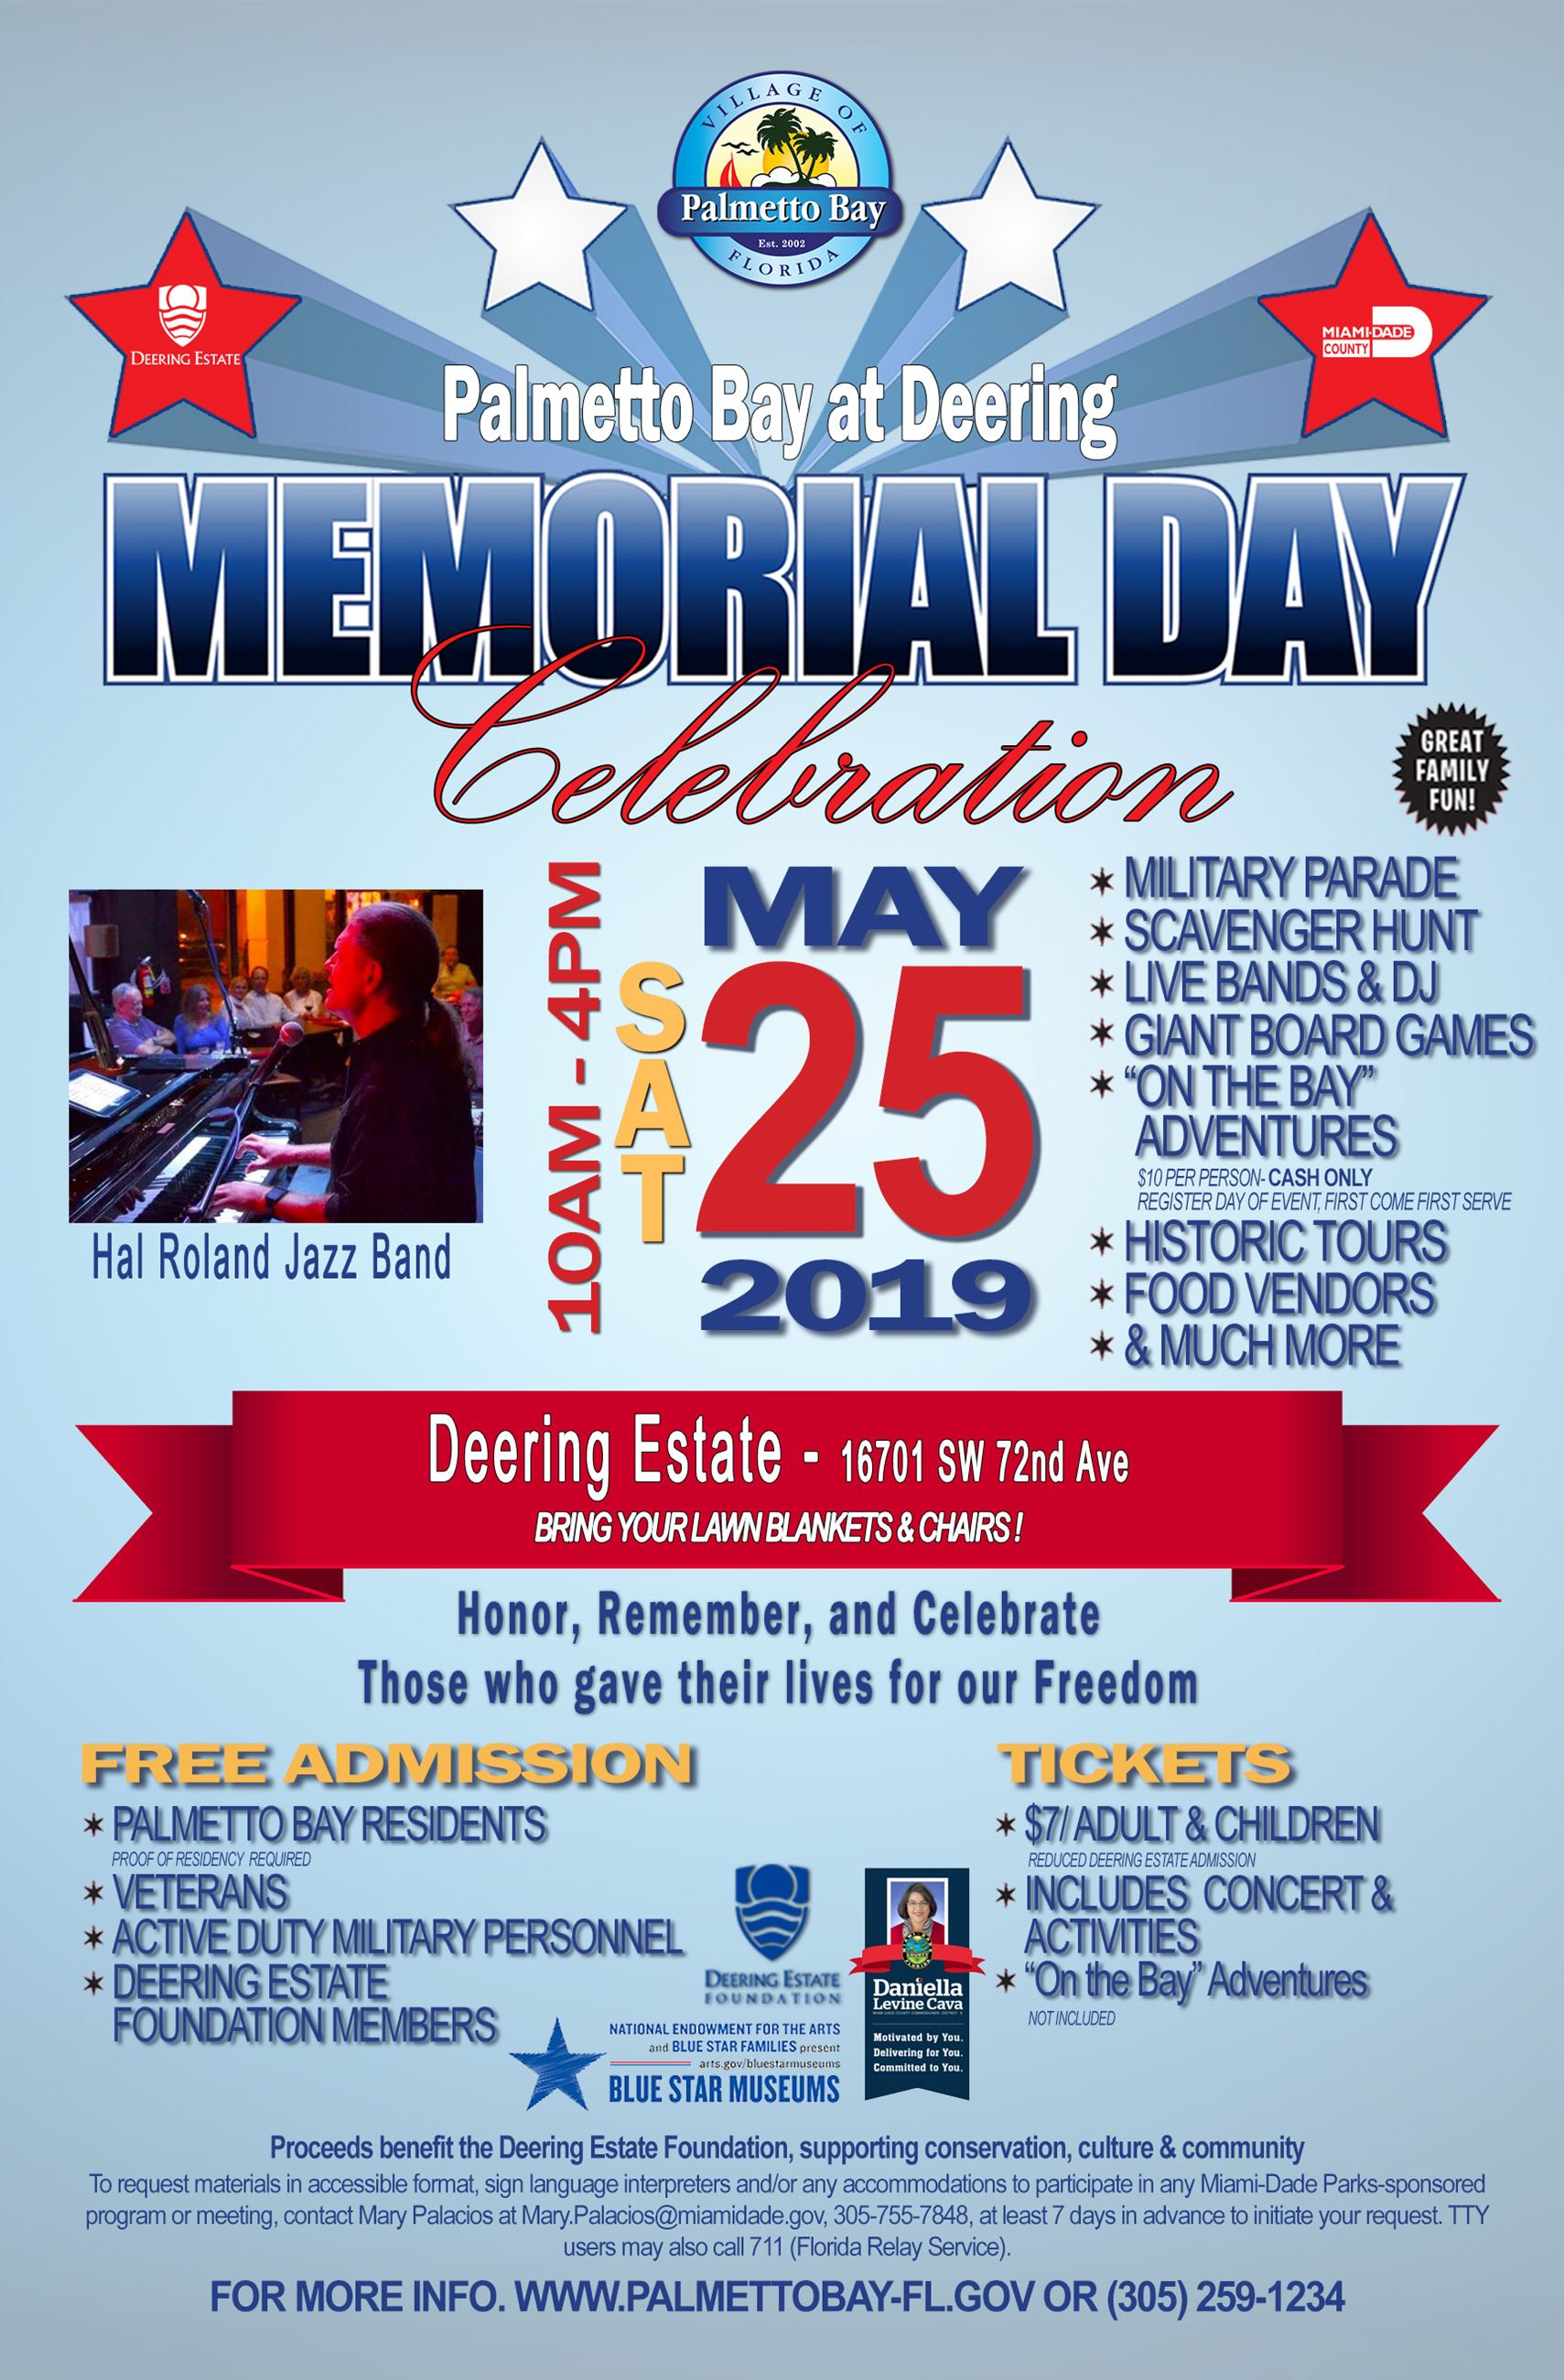 Palmetto Bay at Deering Memorial Day Celebration Saturday, may 25, 2019 from 10 AM - 4 PM at Deering